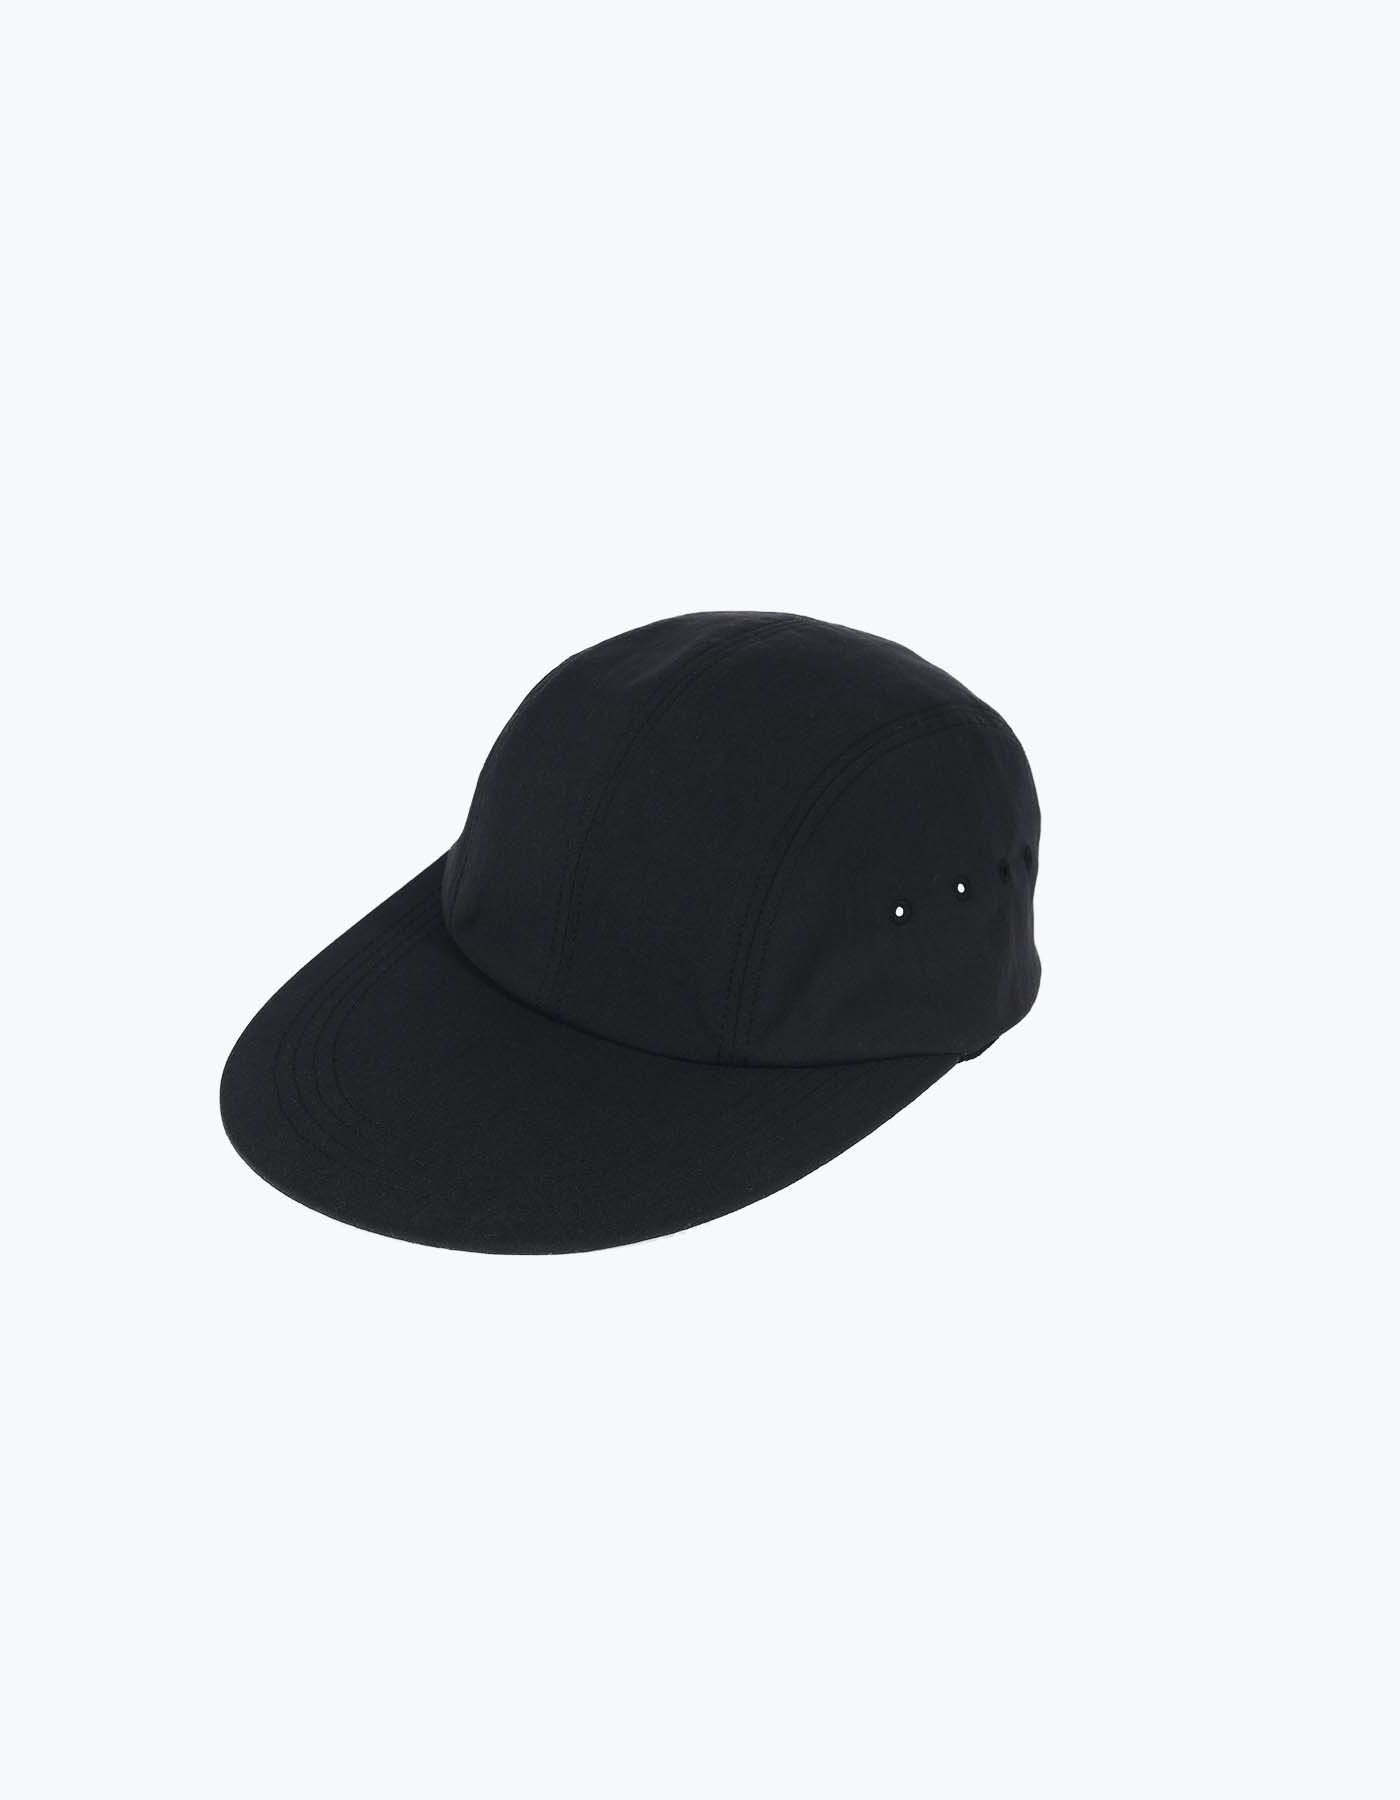 NYLON LONG BILL CAP / BLACK